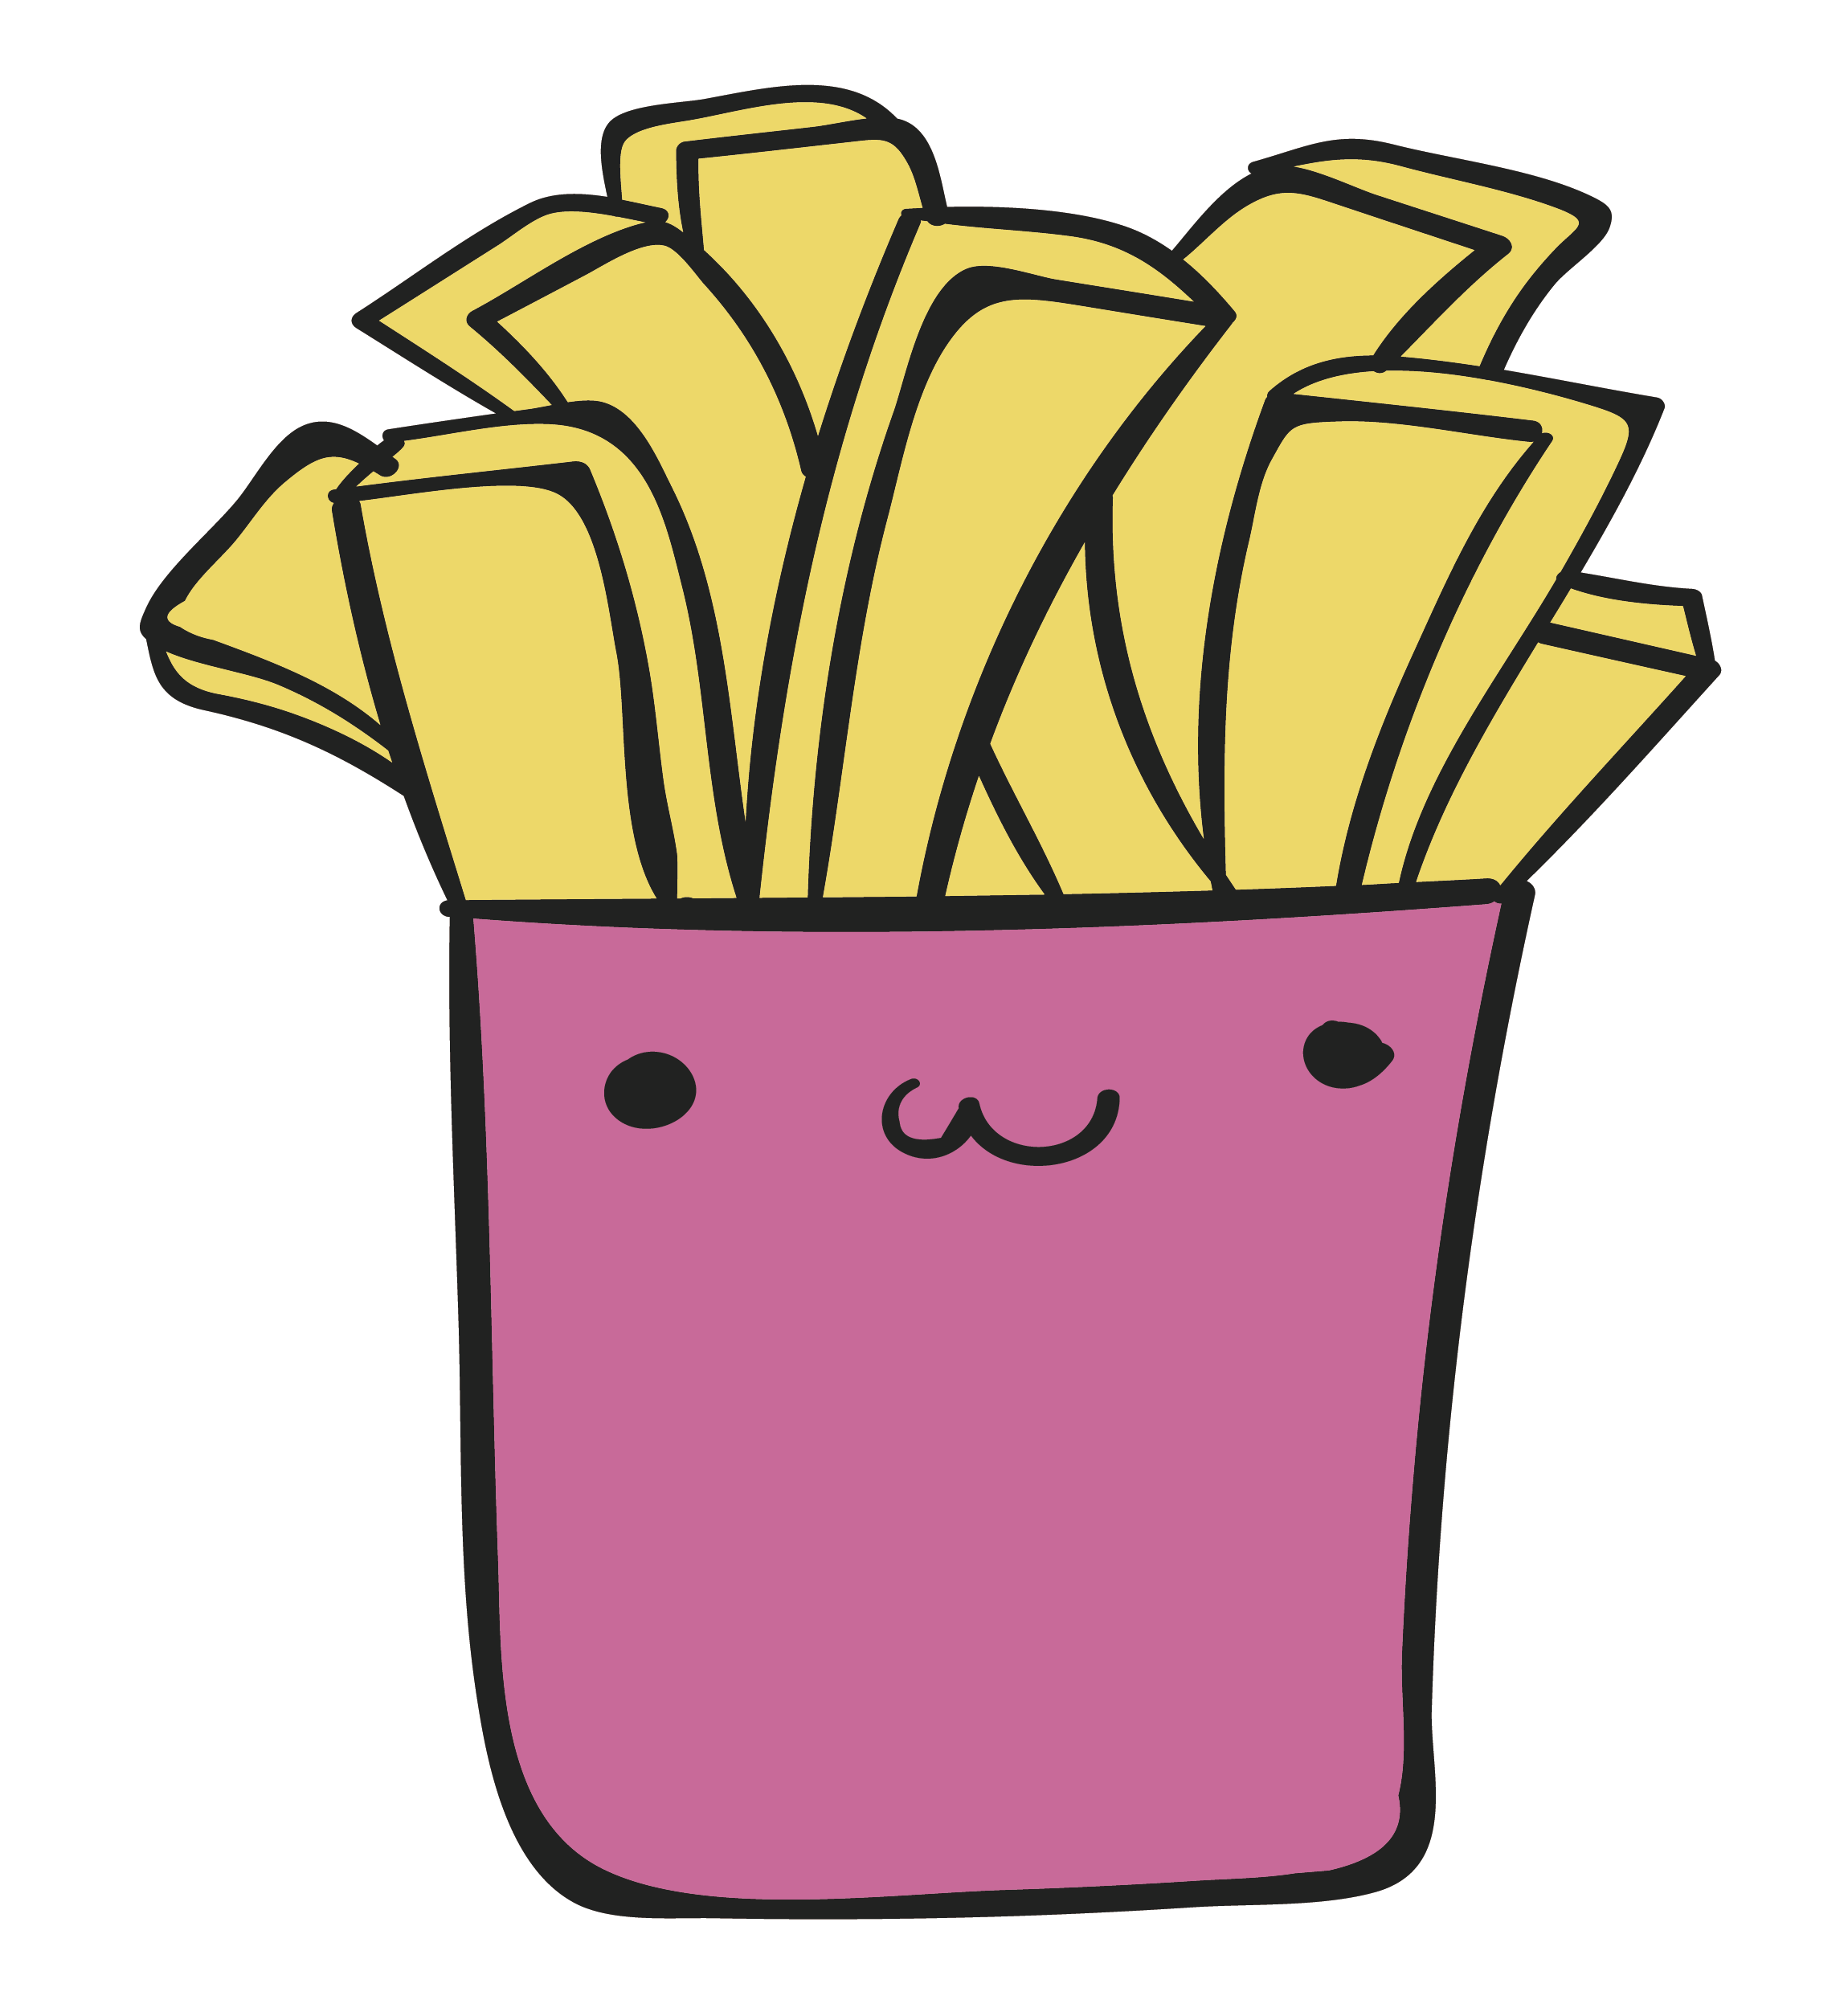 Carton drawing food chinese. French fries junk clip